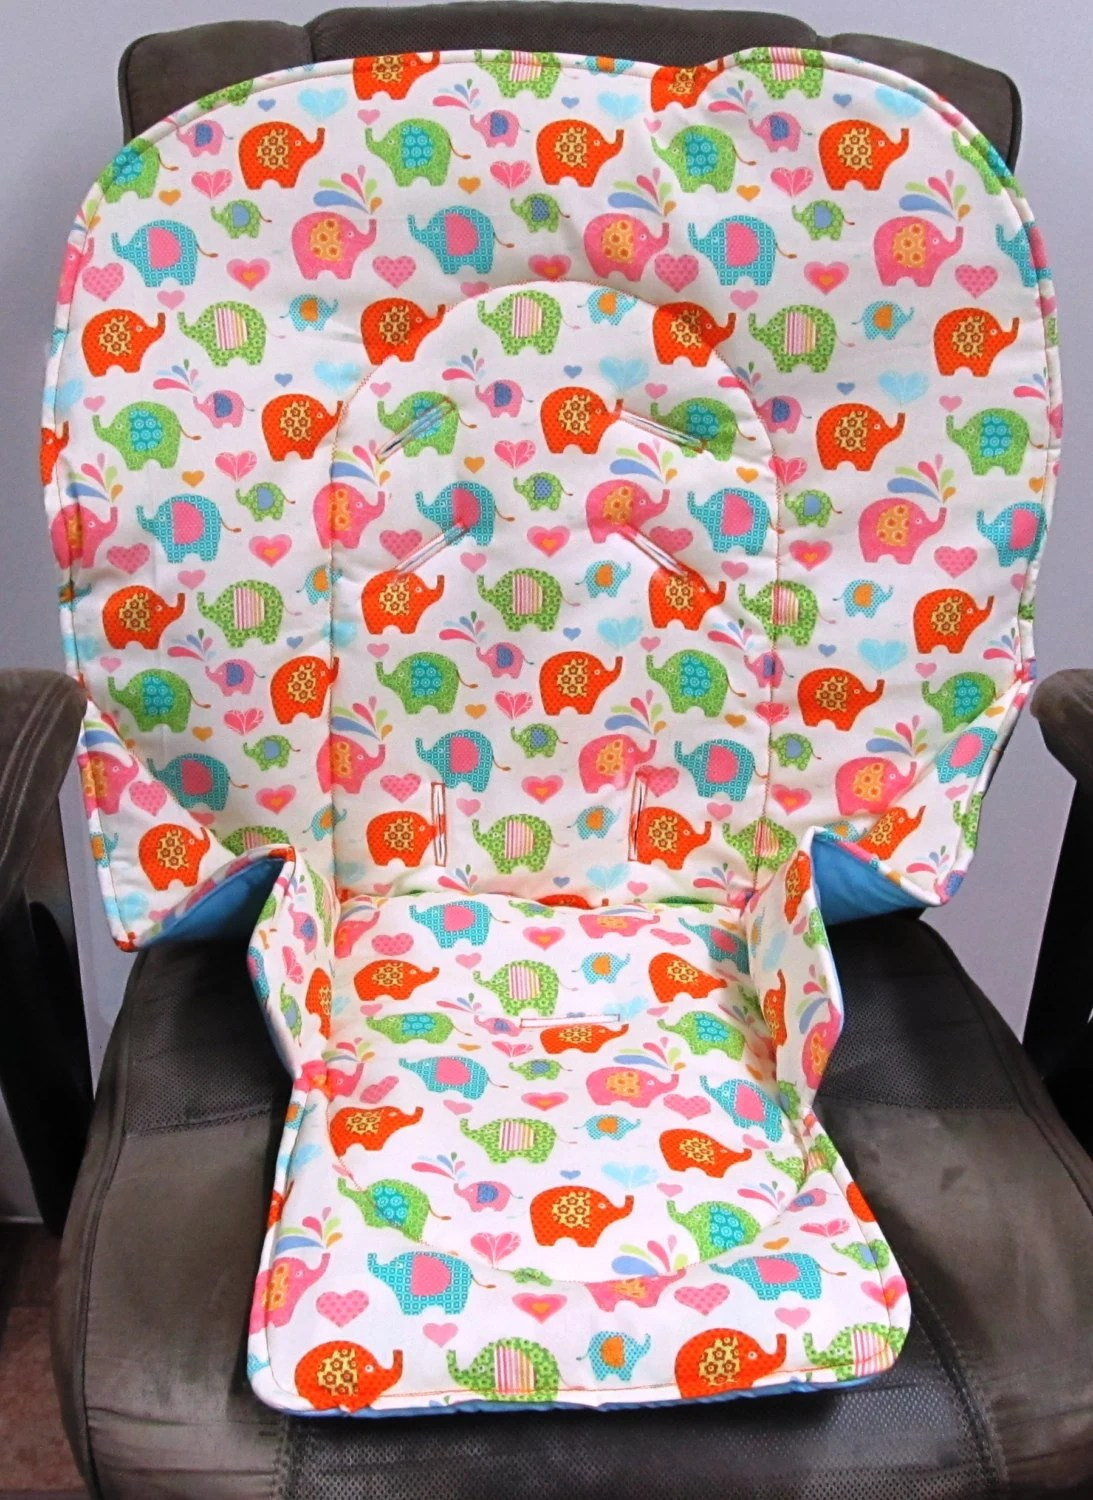 graco duodiner high chair cover replacement futon bed chicco pad coverbaby accessory